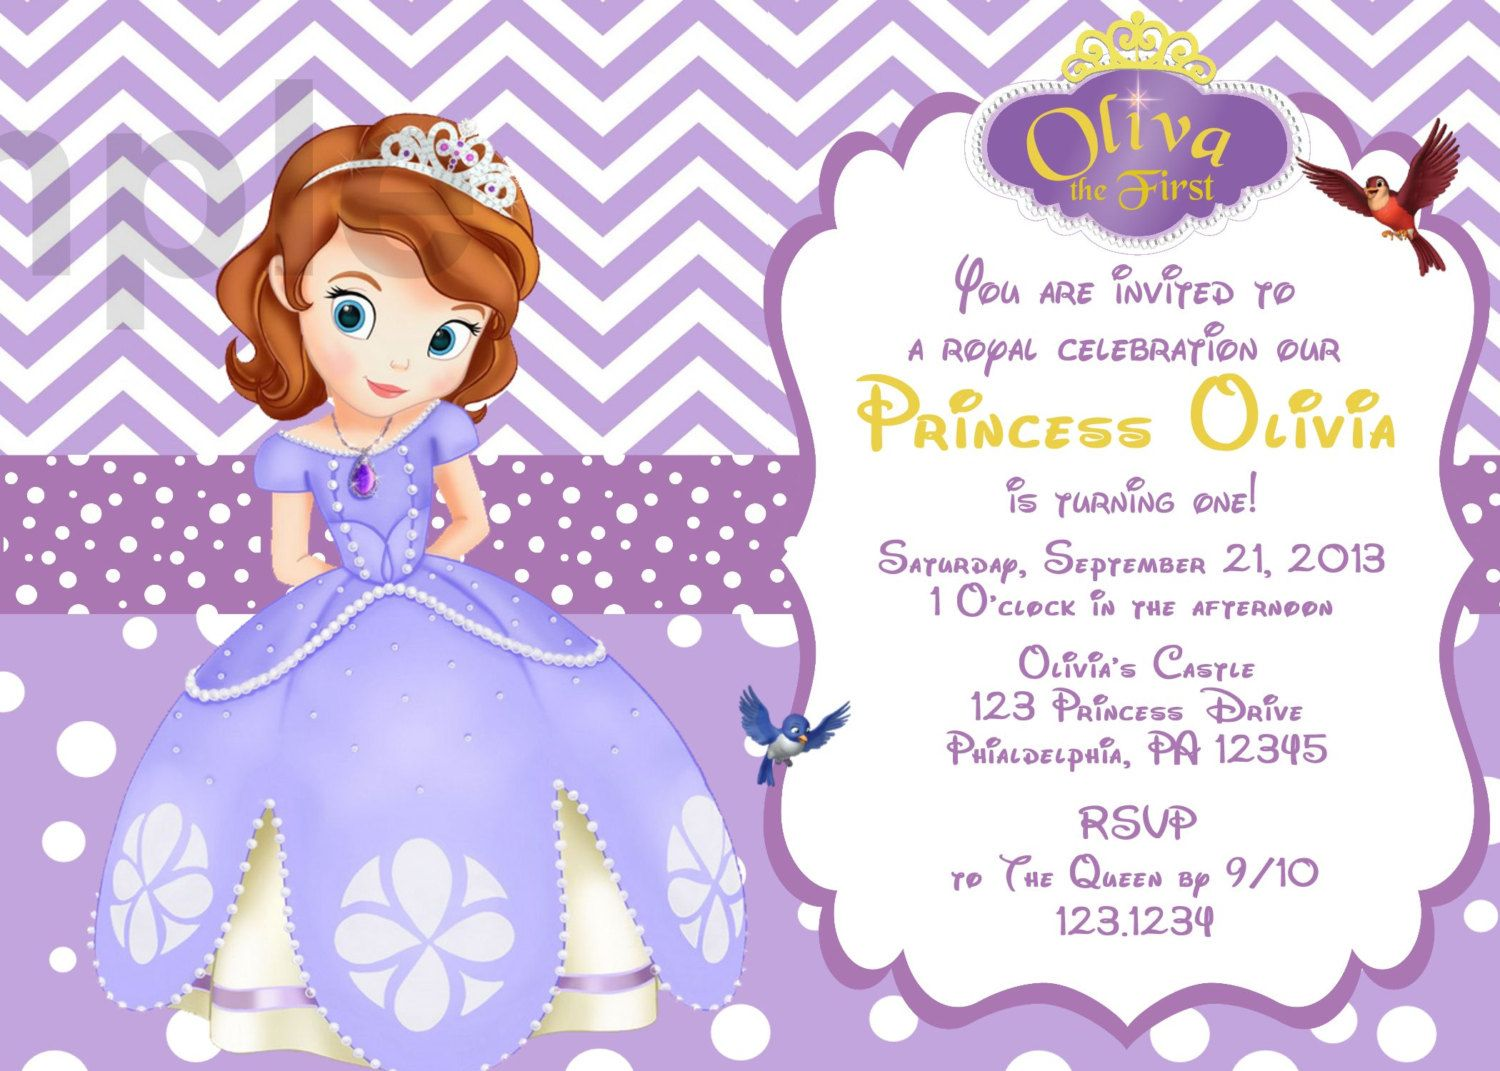 Sofia The First 2 Birthday Invitation Digital By Cutietootieprints 8 00 2nd Birthday Invitations Birthday Invitation Templates Princess Sofia Invitations